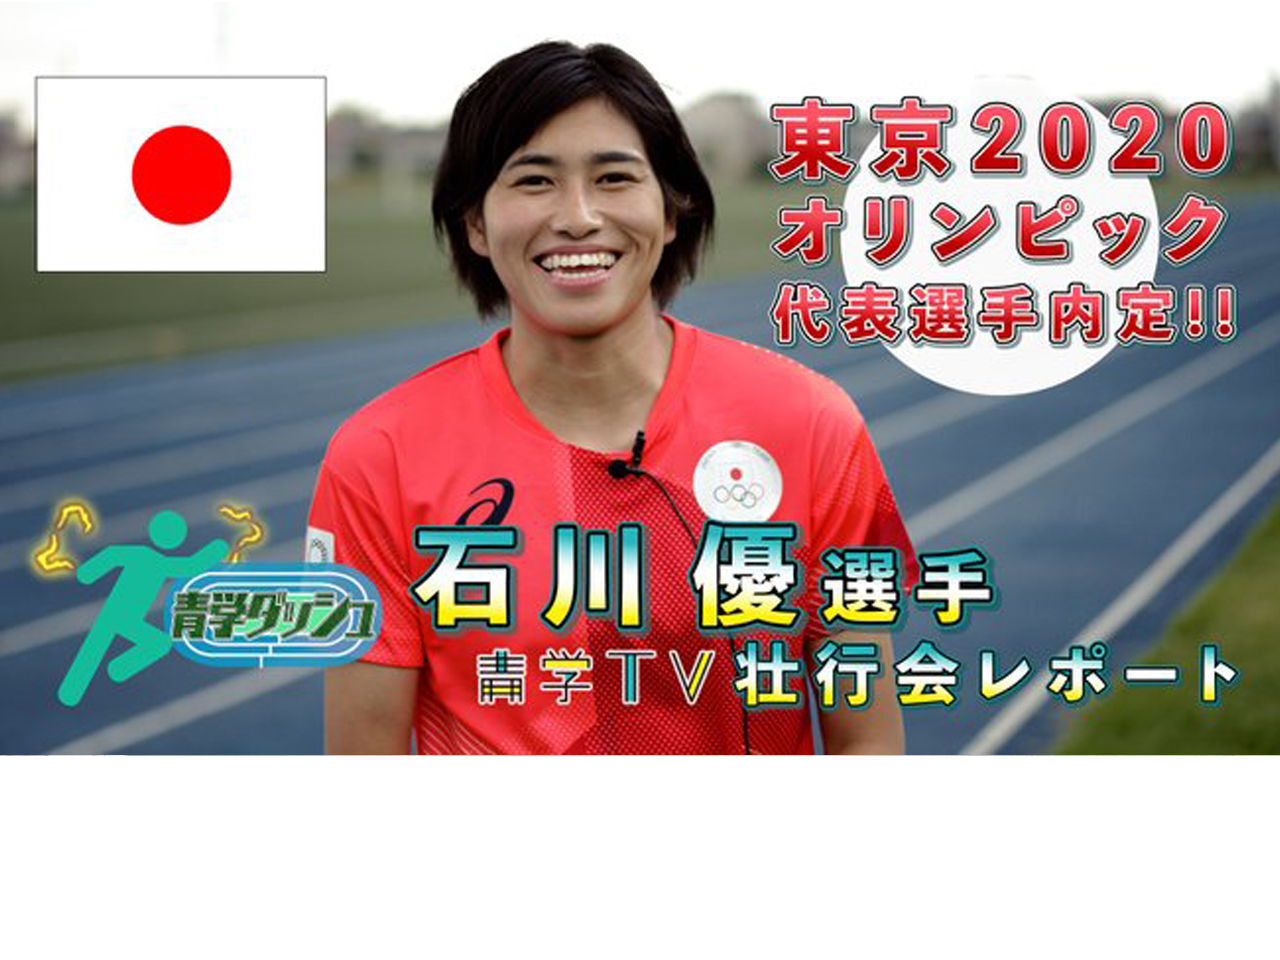 Selected for the Tokyo 2020 Olympics Team! Report of the Send-off ceremony for ISHIKAWA Yu.